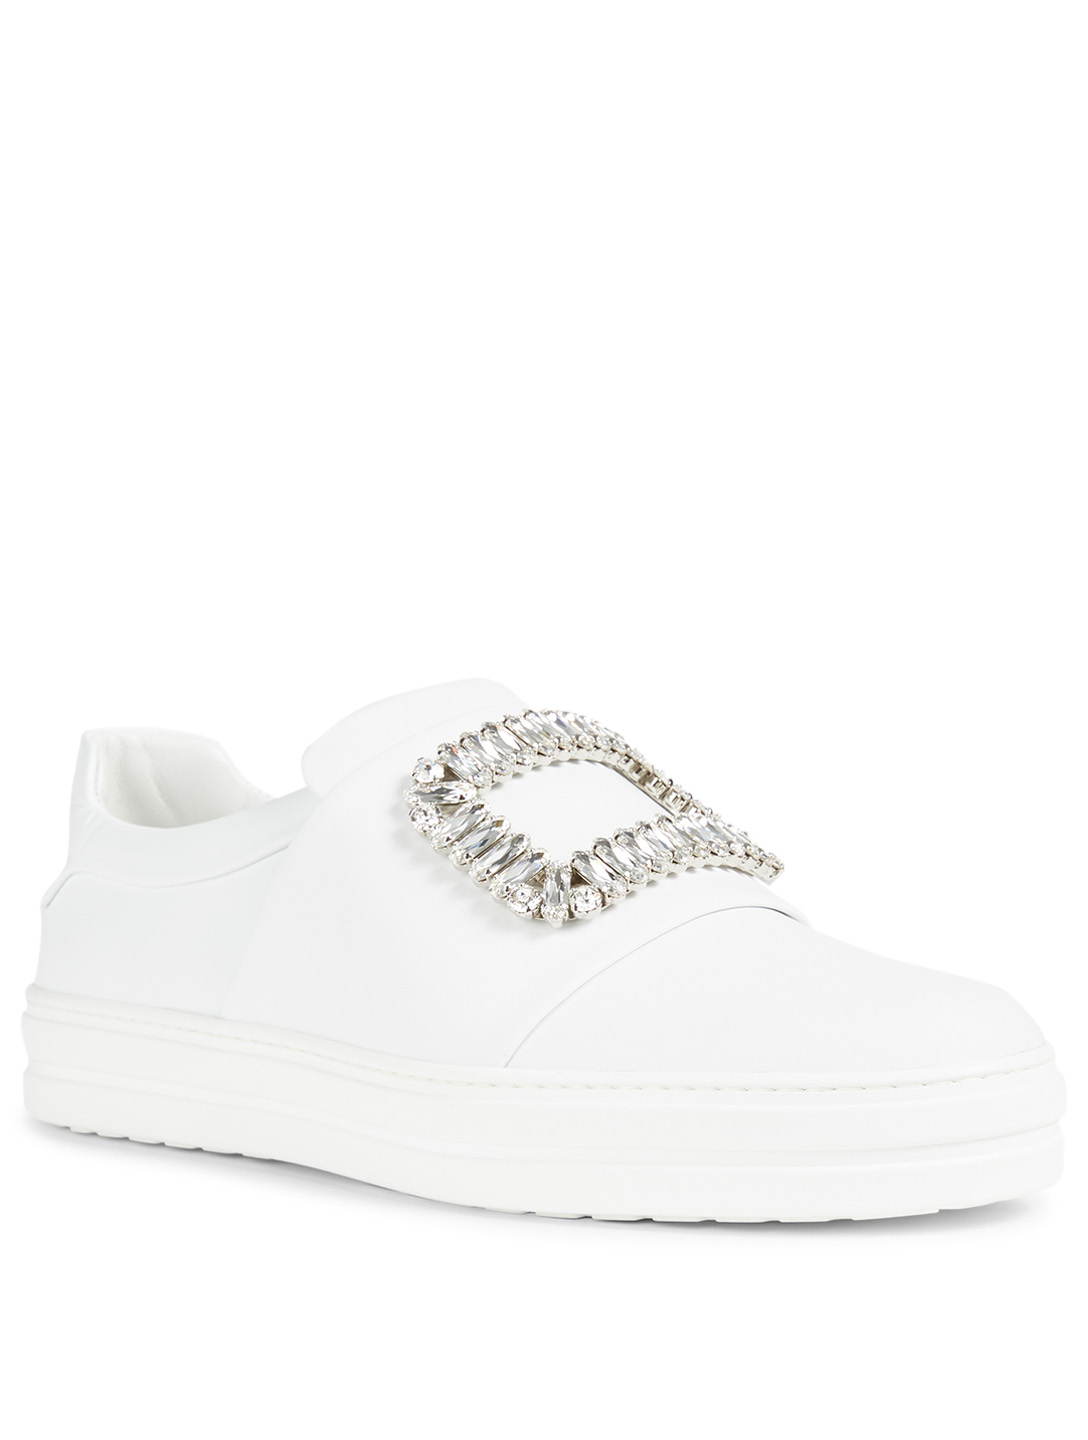 ROGER VIVIER Sneaky Viv Buckle Leather Sneakers Women's White